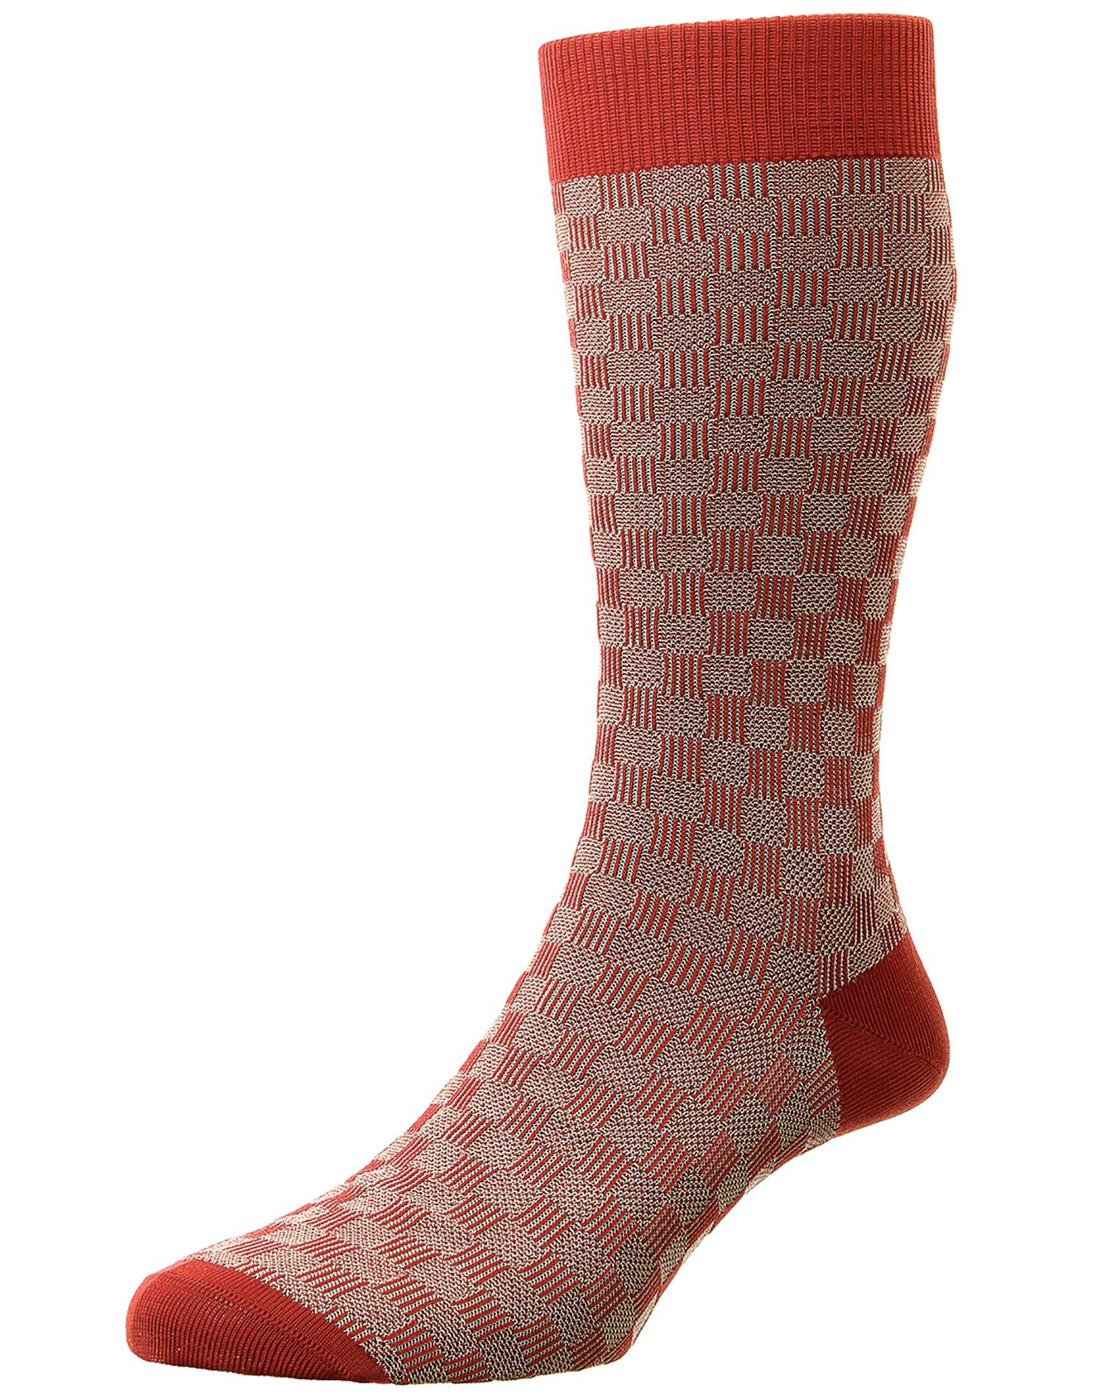 + Patino PANTHERELLA Men's 3D Basketweave Socks R